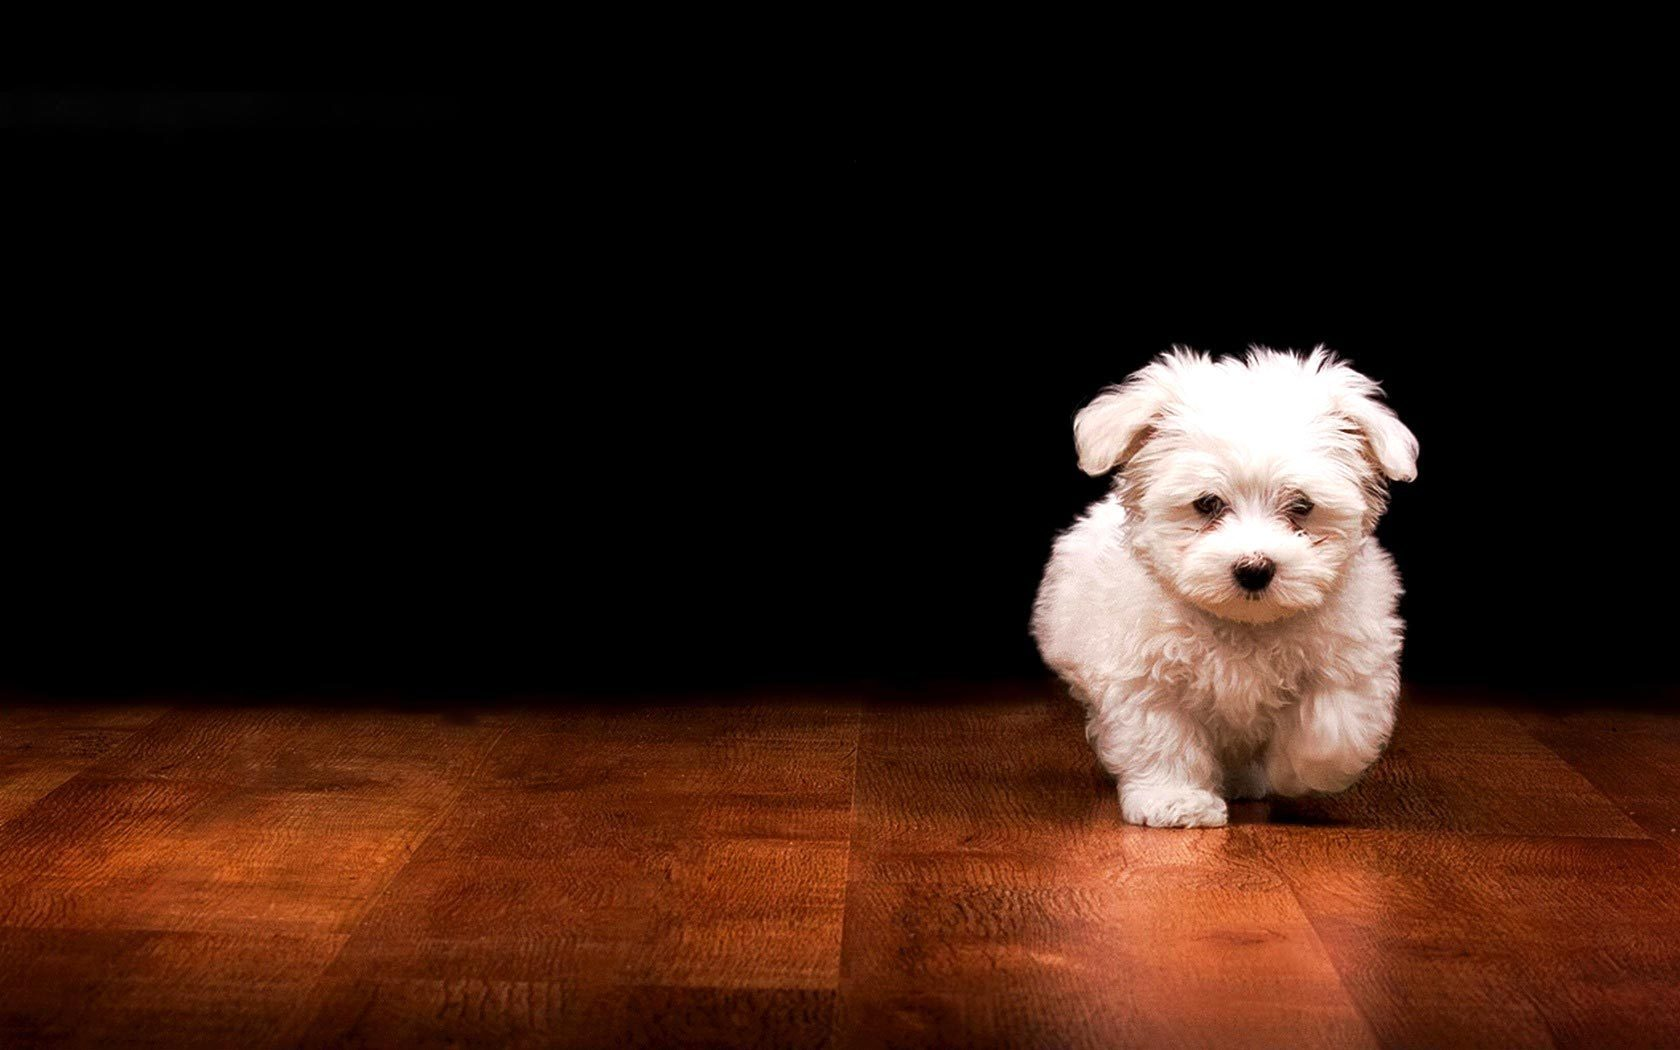 Puppy Walking In The Floor - Puppy Walking In The Floor